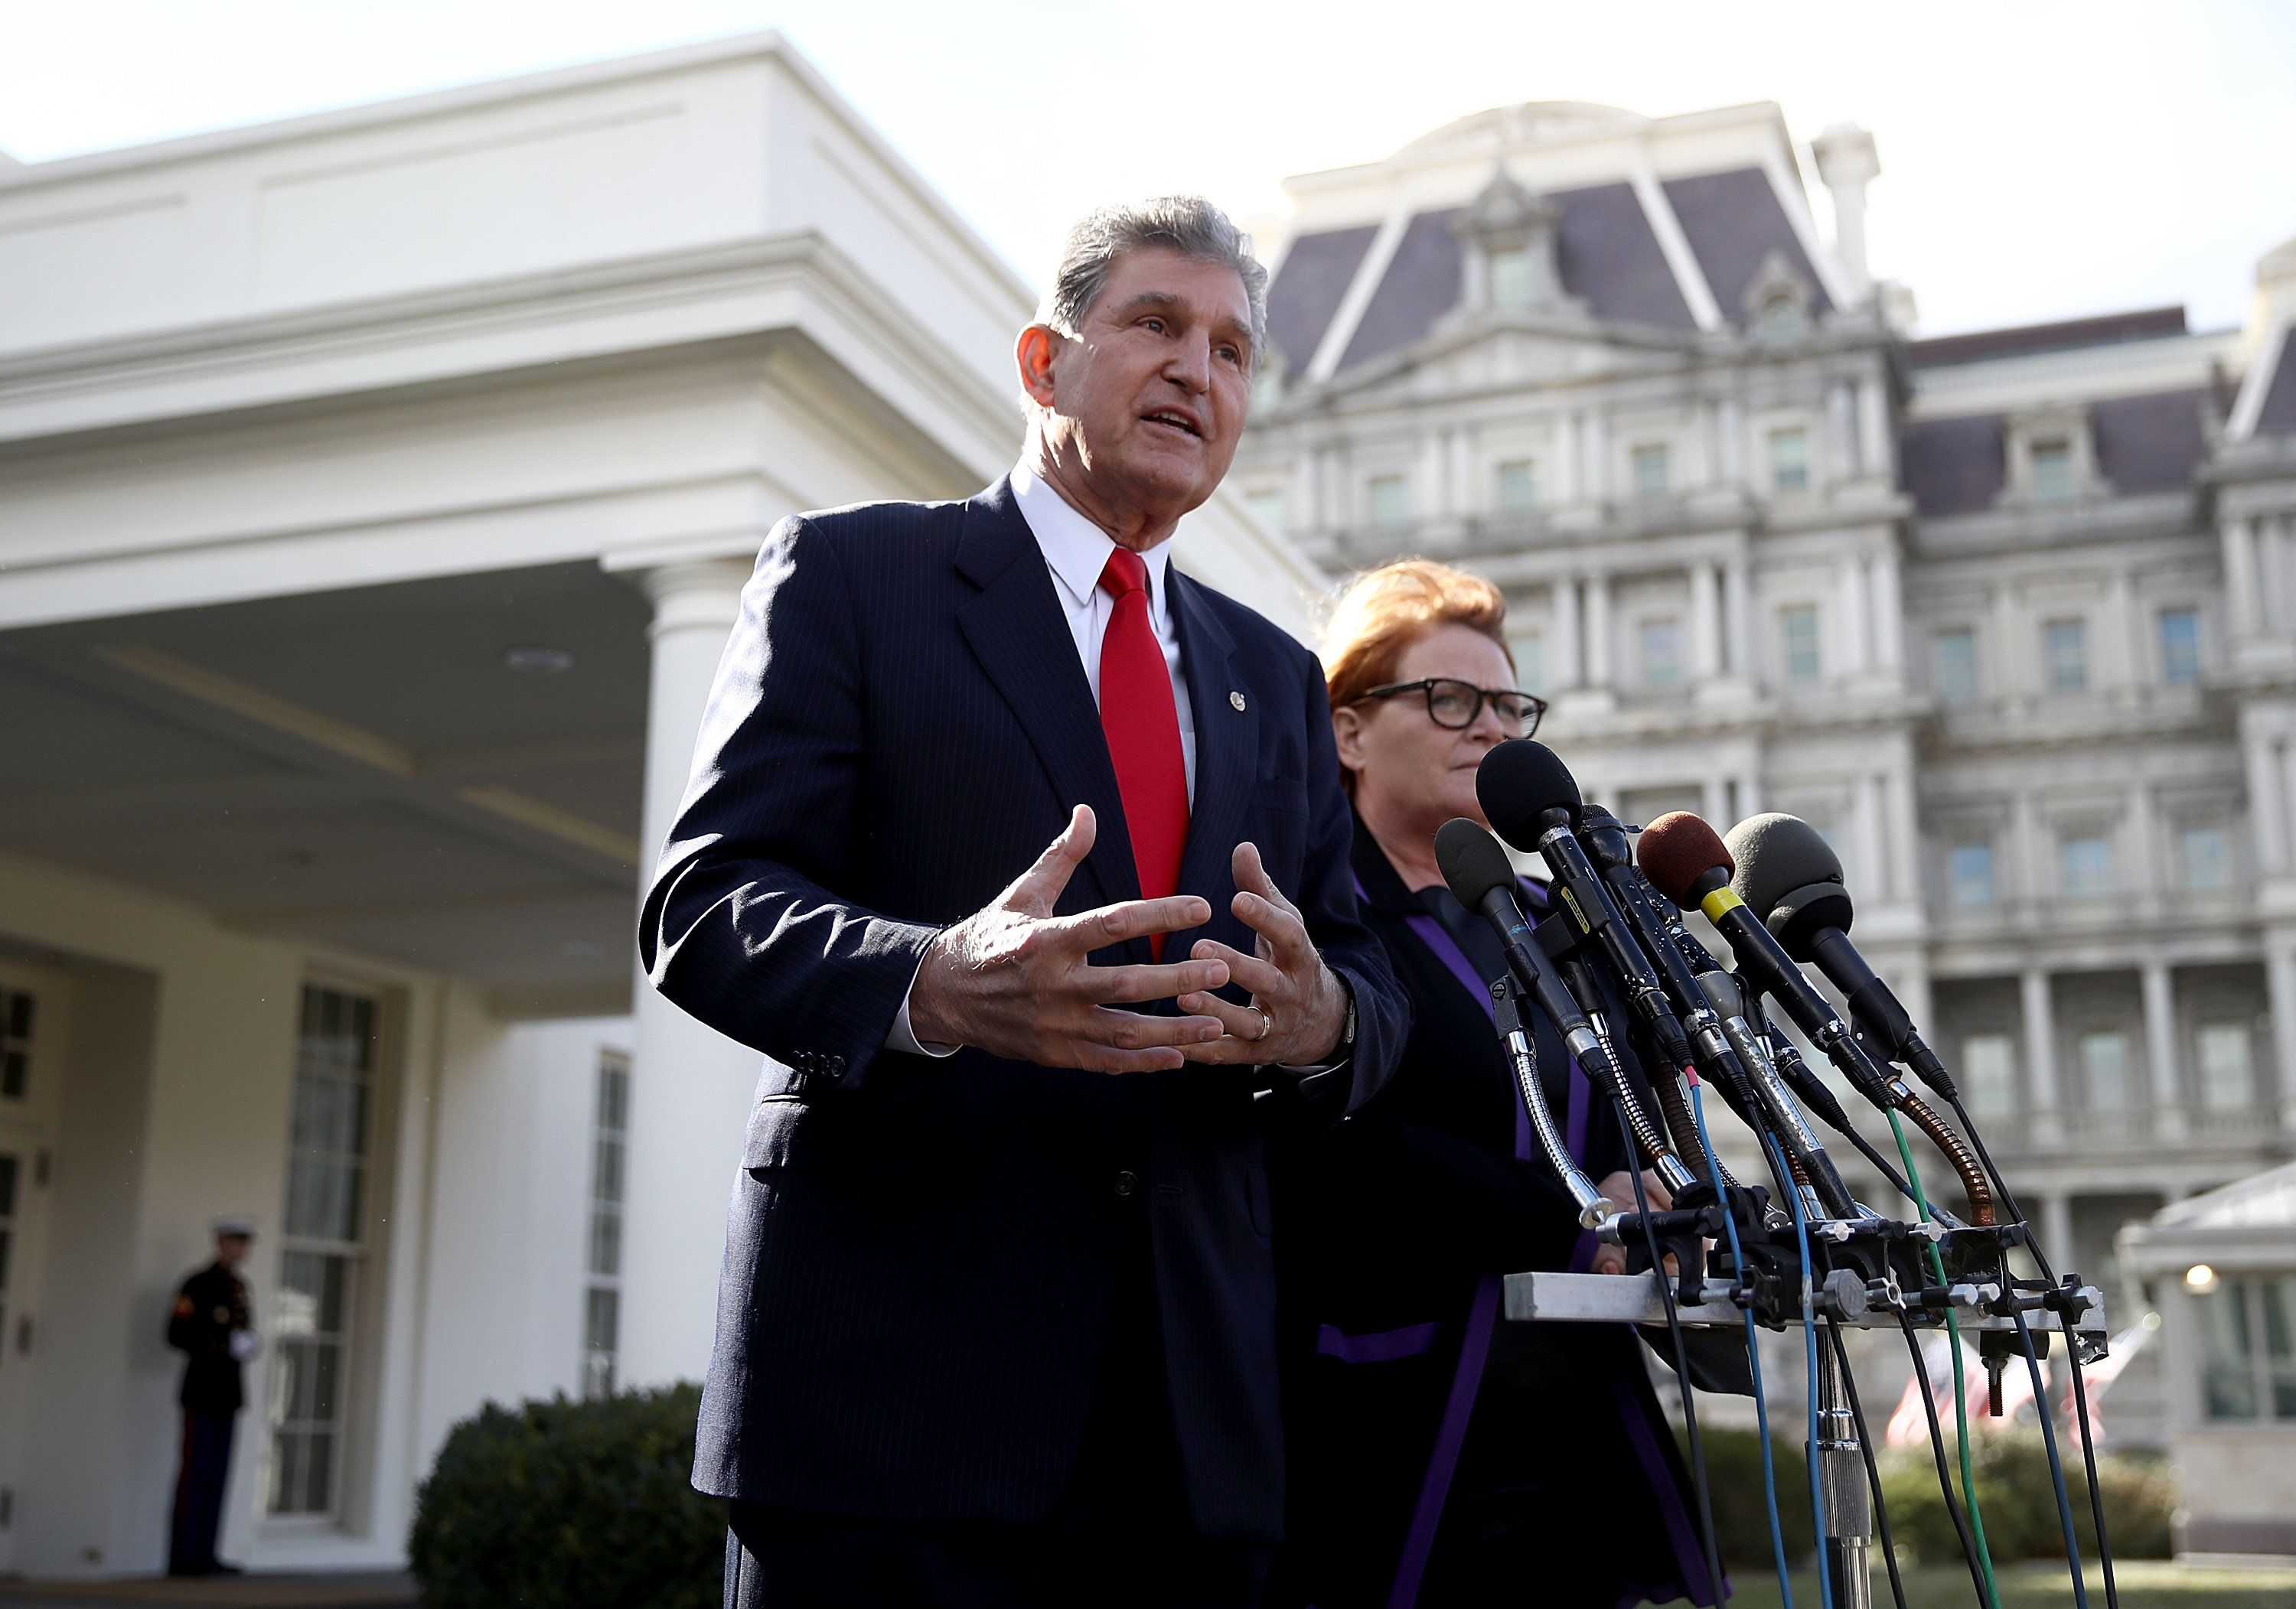 WASHINGTON, DC - FEBRUARY 09:  Sen. Joe Manchin (D-WV) and Sen. Heidi Heitkamp (D-ND) speak to members of the press following a meeting with U.S. President Donald Trump on February 9, 2017 in Washington, DC. The senators met with Trump to discuss the nomination of Judge Neil Gorsuch to the U.S. Supreme Court. (Photo by Win McNamee/Getty Images)